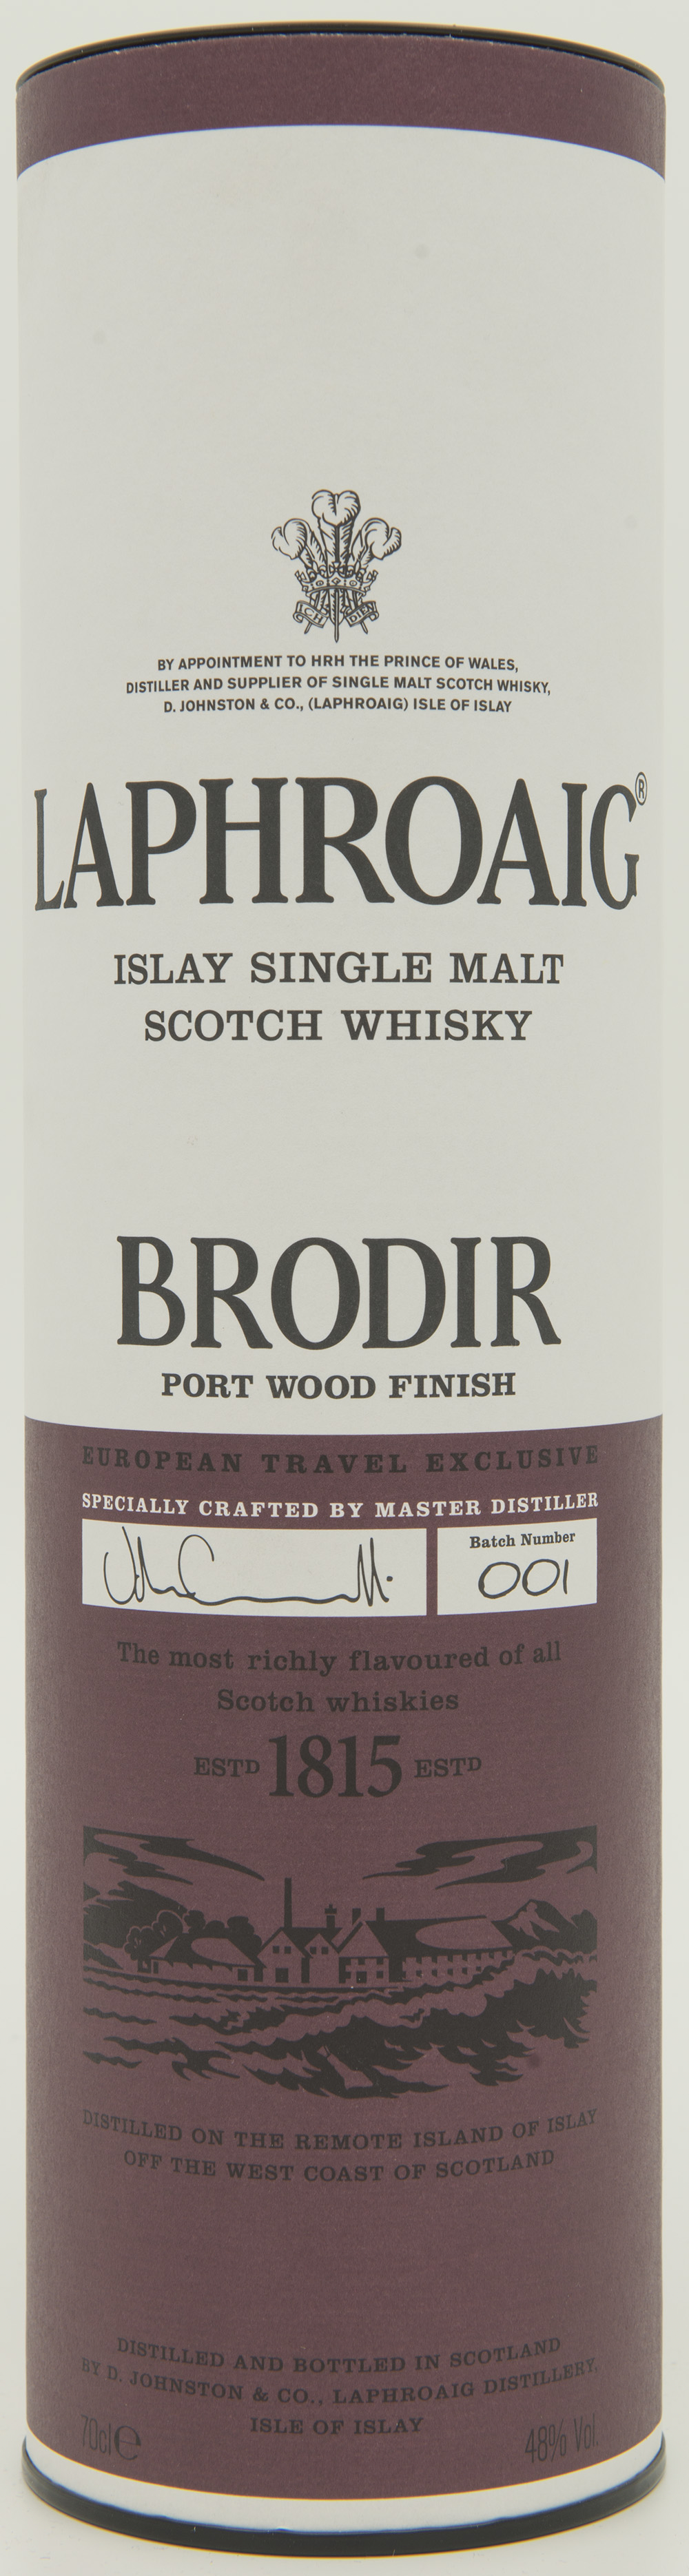 Billede: DSC_6443 - Laphroaig Brodir Port Wood Finish - Batch 001 - tube front.jpg